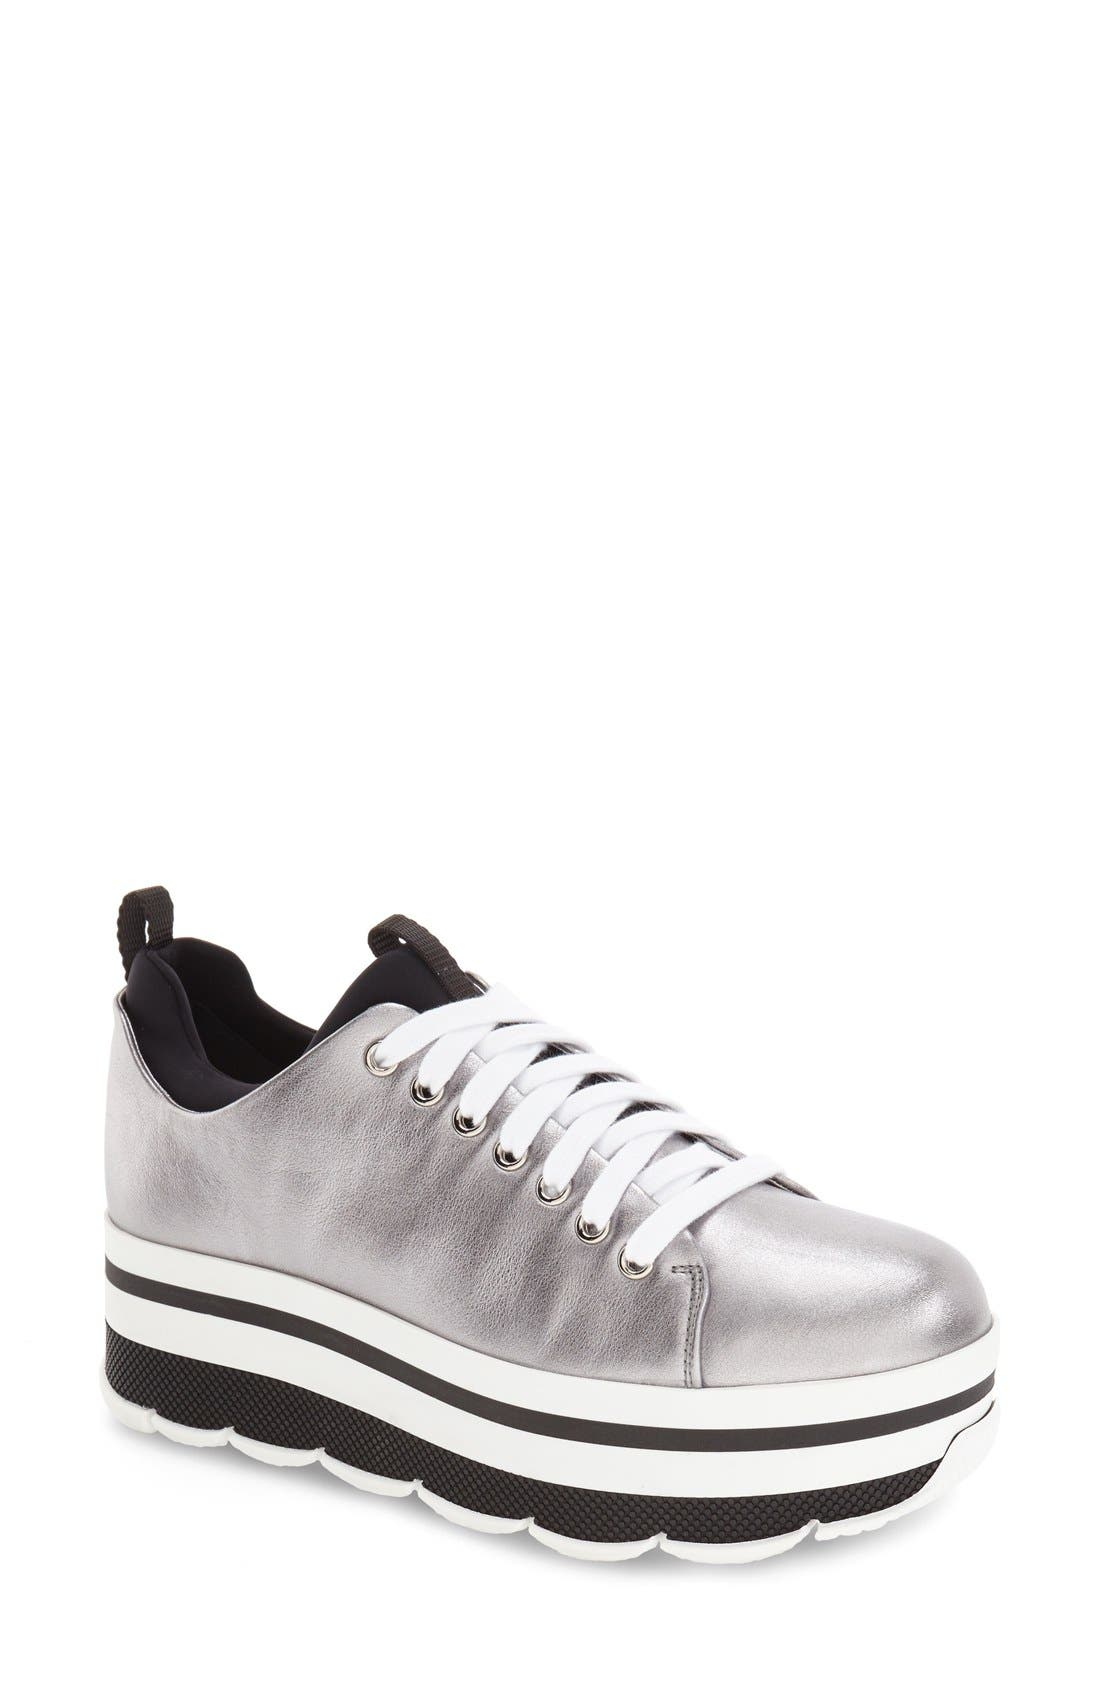 Platform Sneaker,                             Main thumbnail 1, color,                             Silver Leather